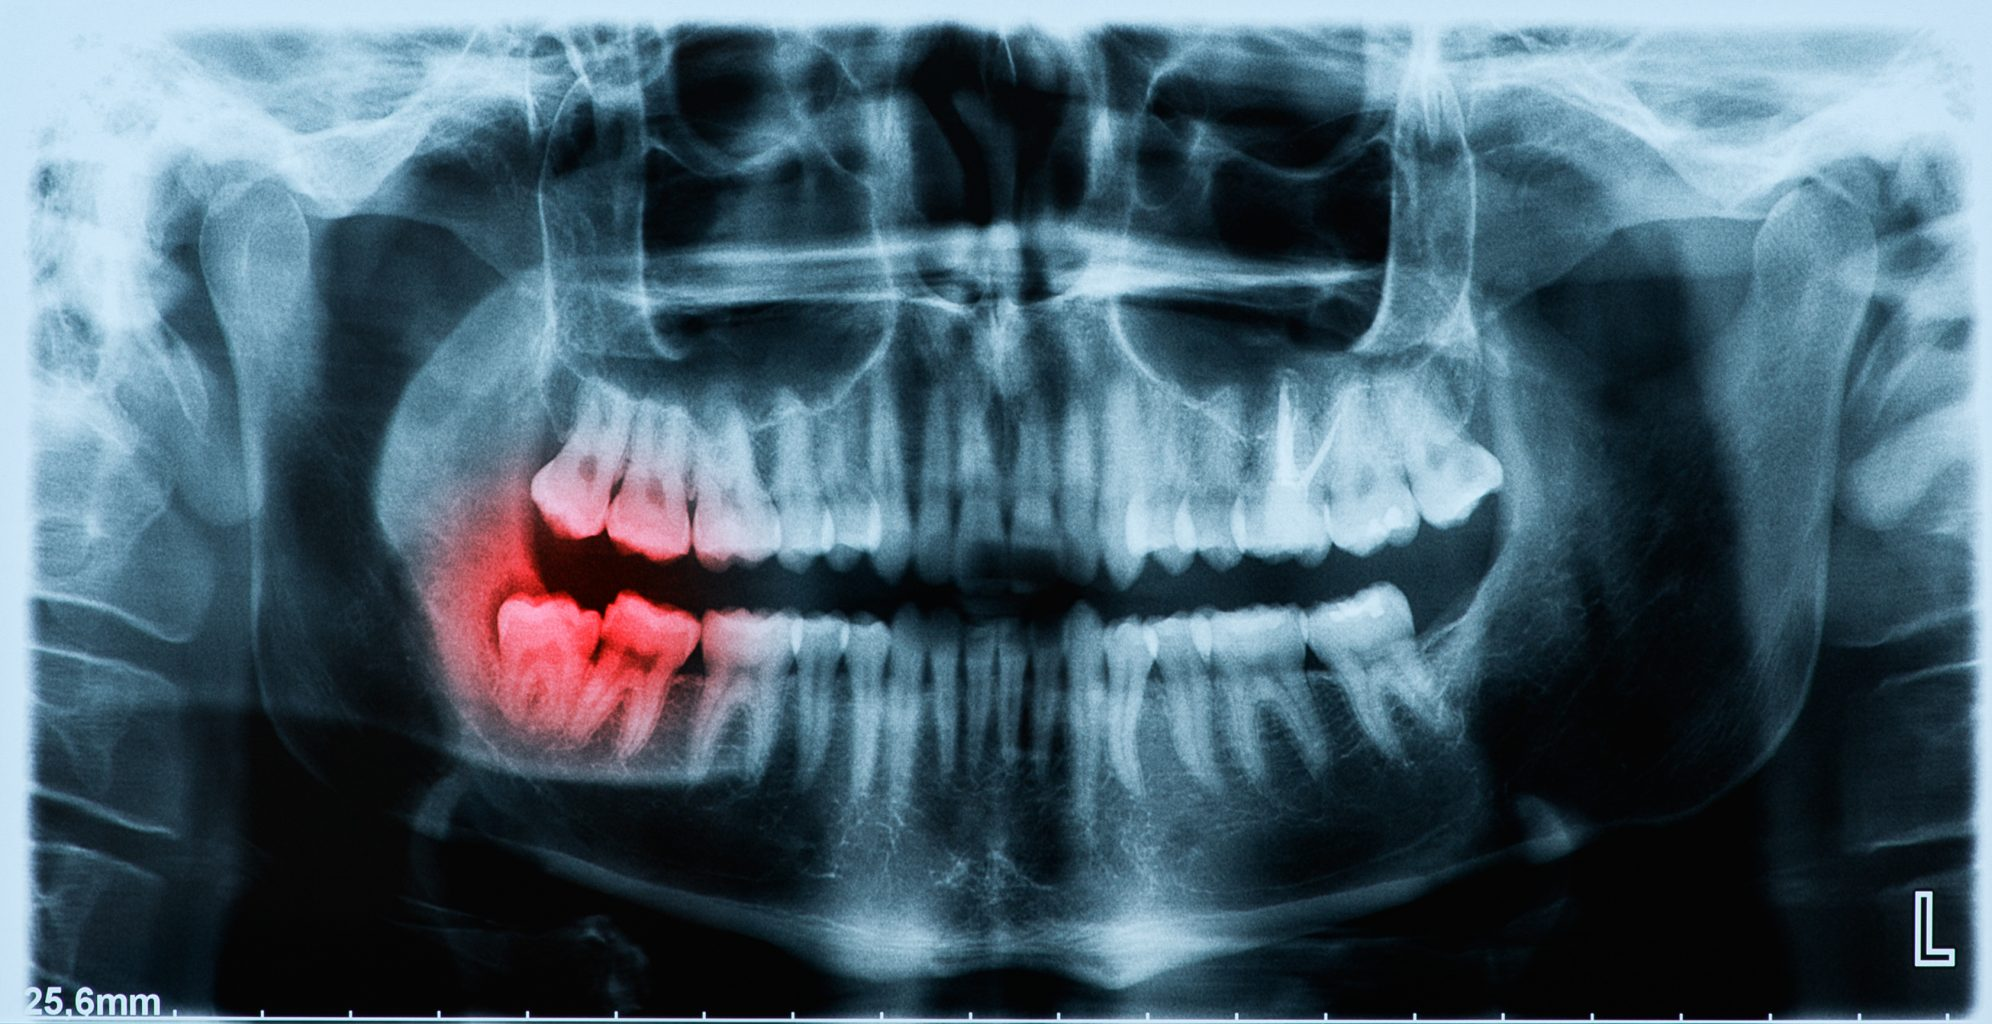 Panoramic X Ray Image Of Teeth And Mouth With Wisdom Teeth